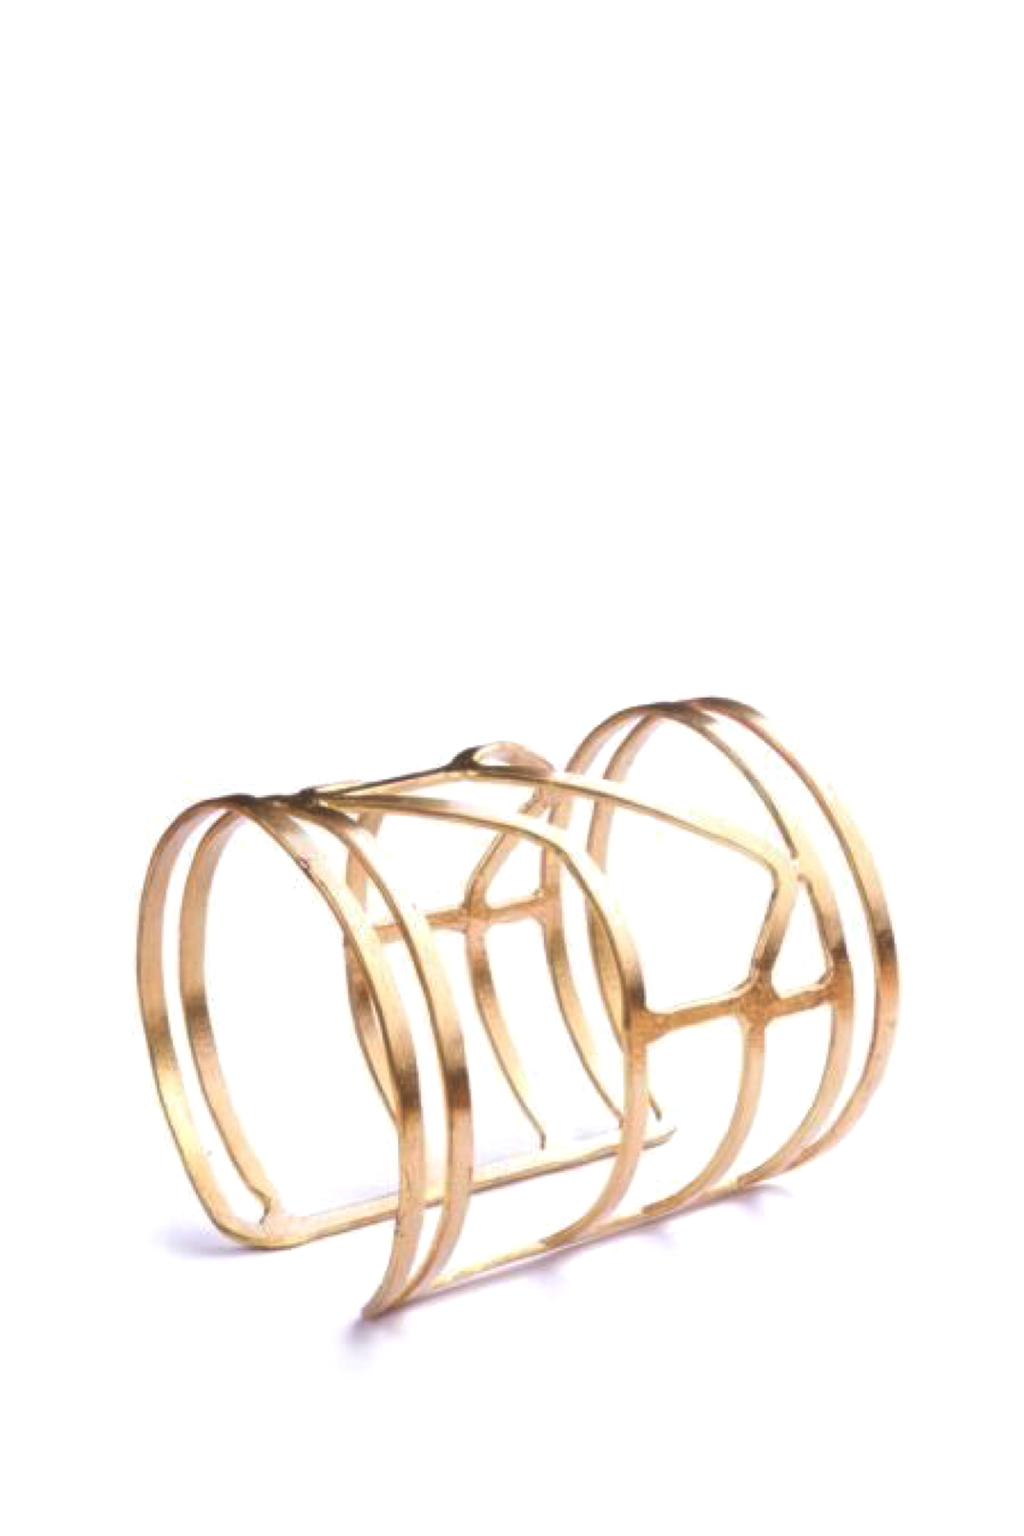 Athena Gold Cuff - ROSE MADE SHOP